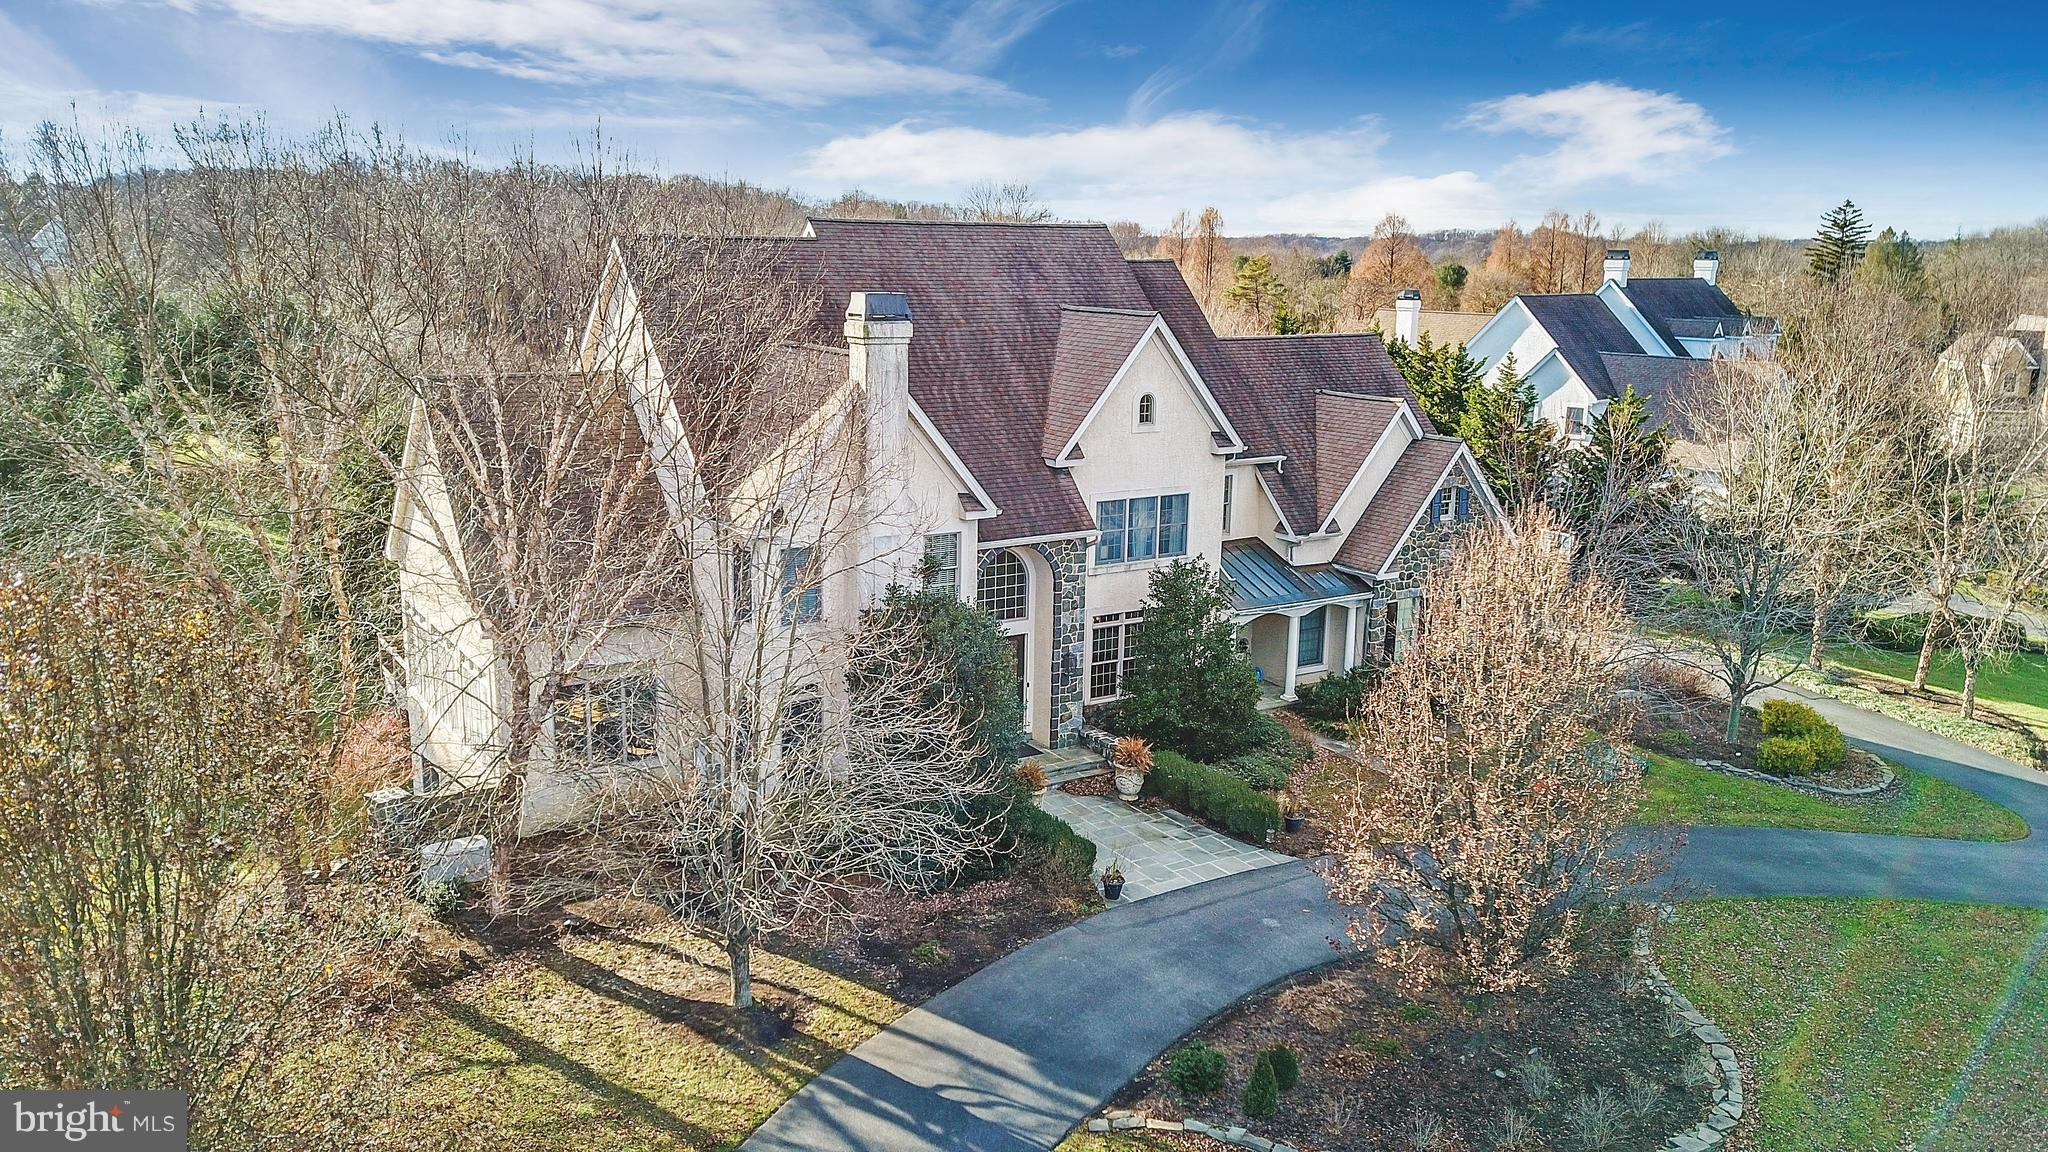 401 WOODALE DRIVE, KENNETT SQUARE, PA 19348